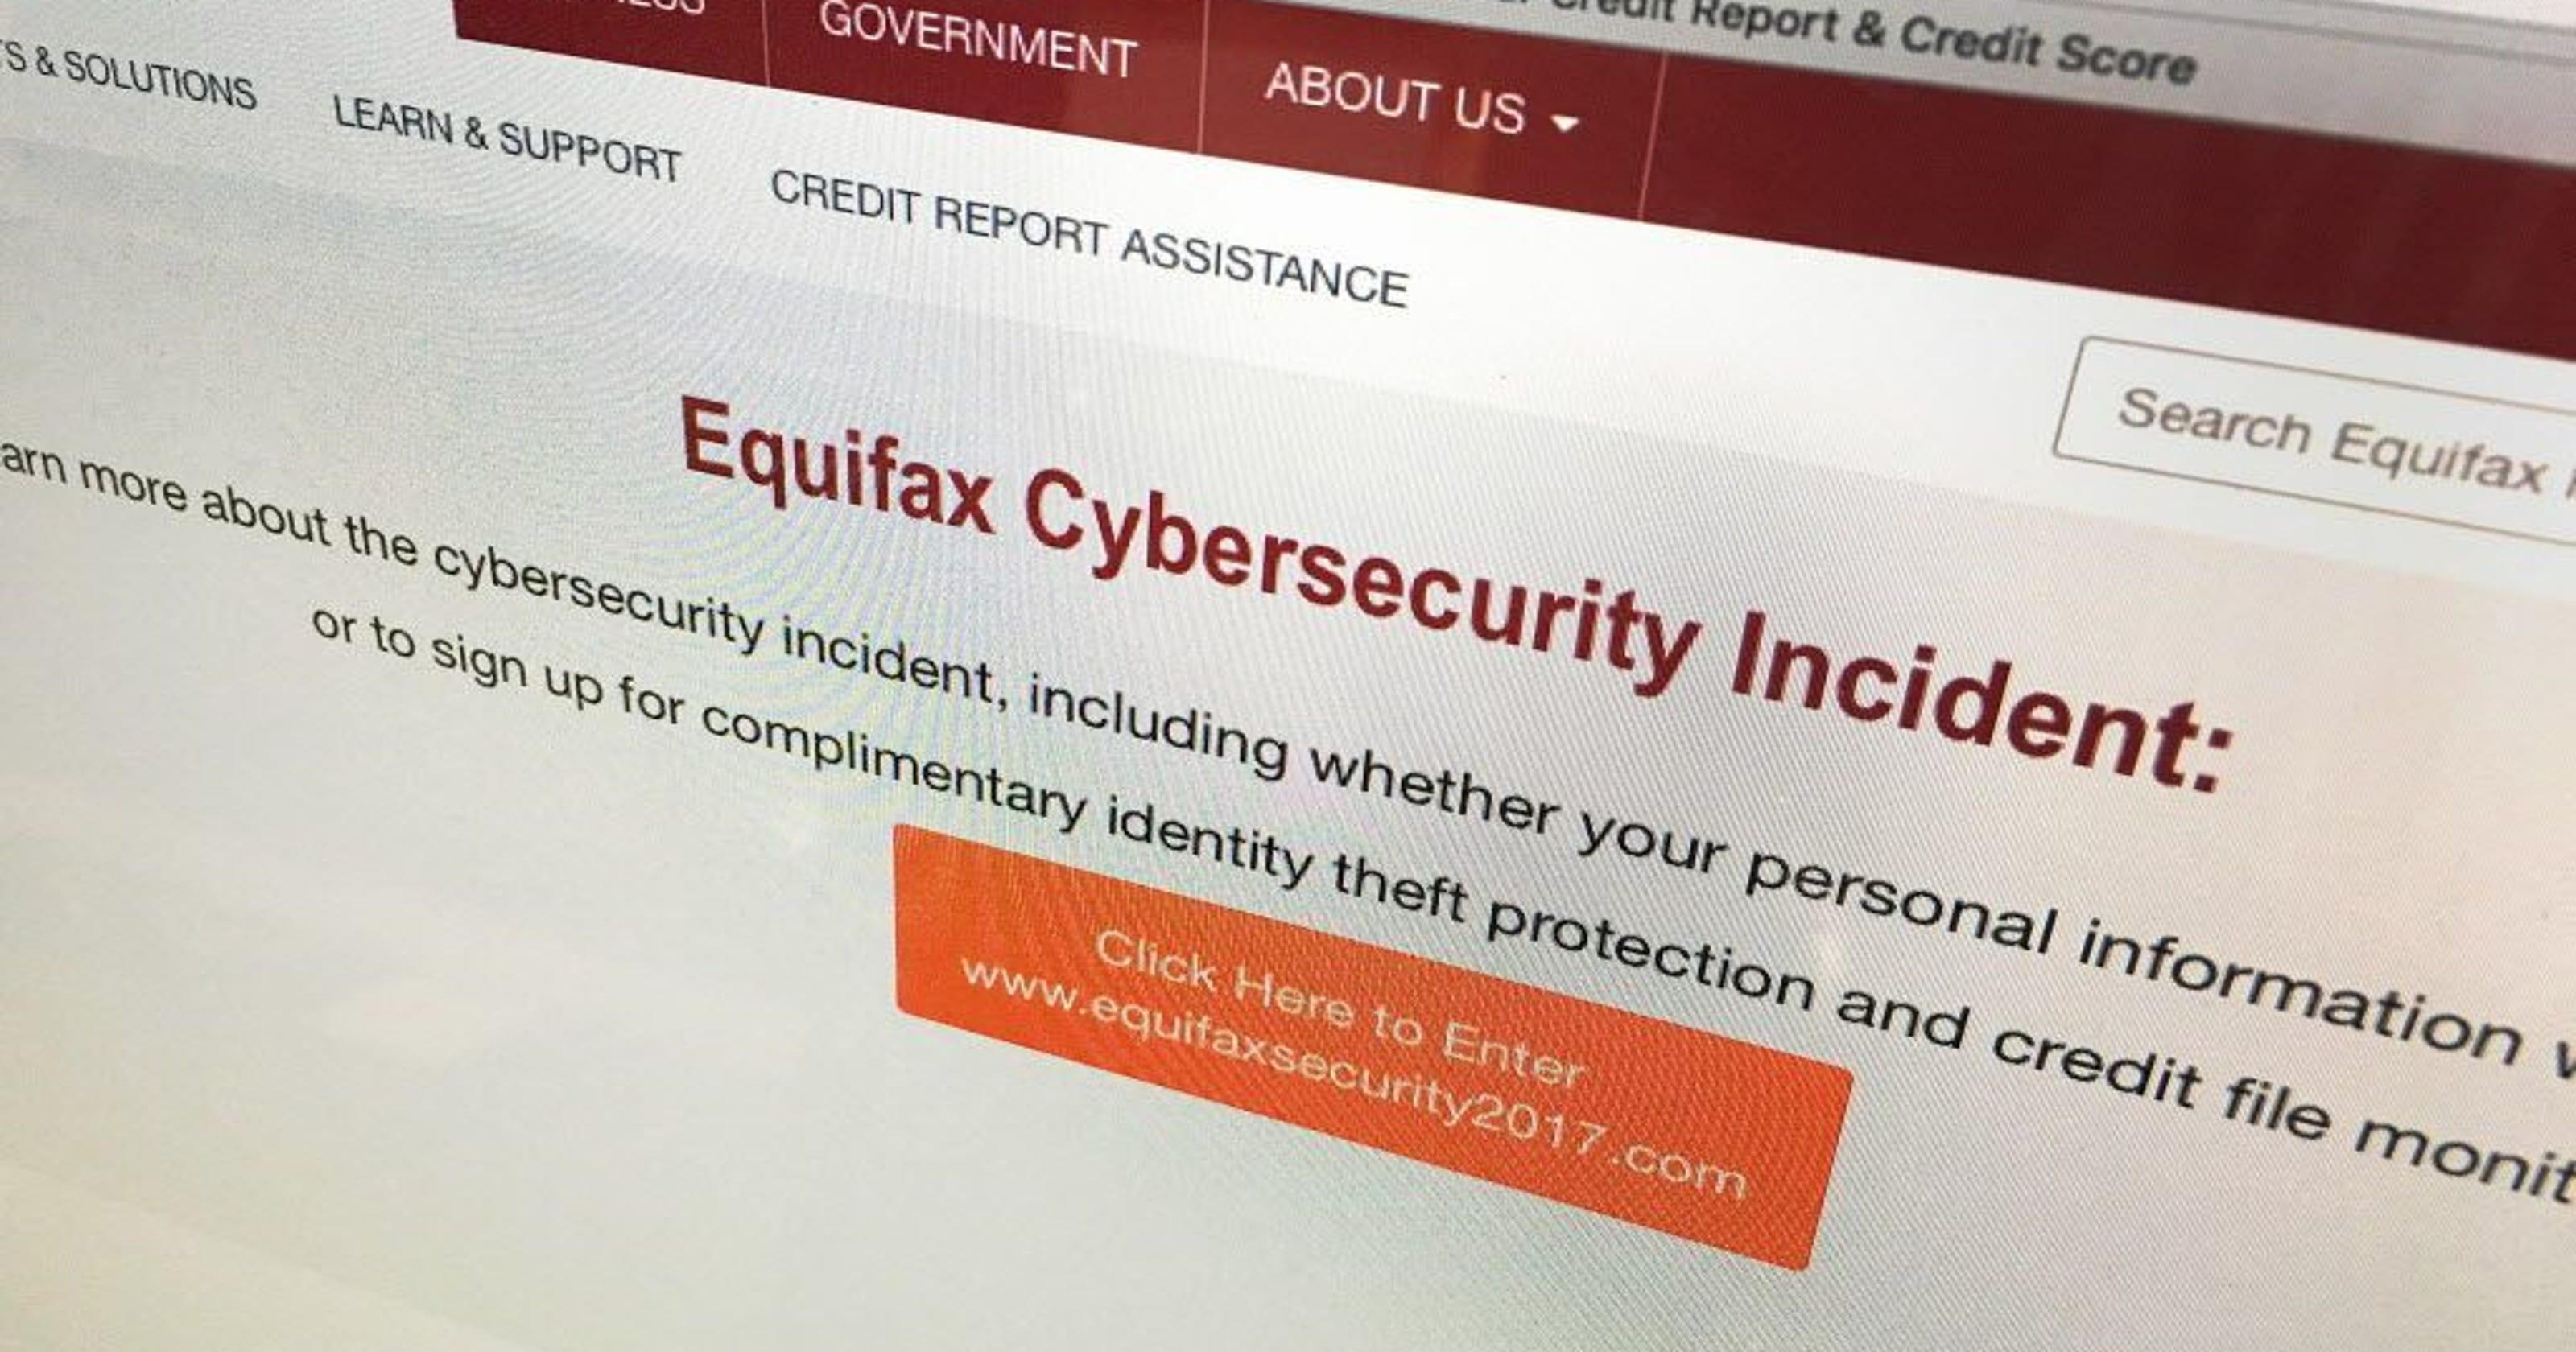 Equifax Credit Report >> Equifax Data Breach Why The Company And Credit Industry Will Survive